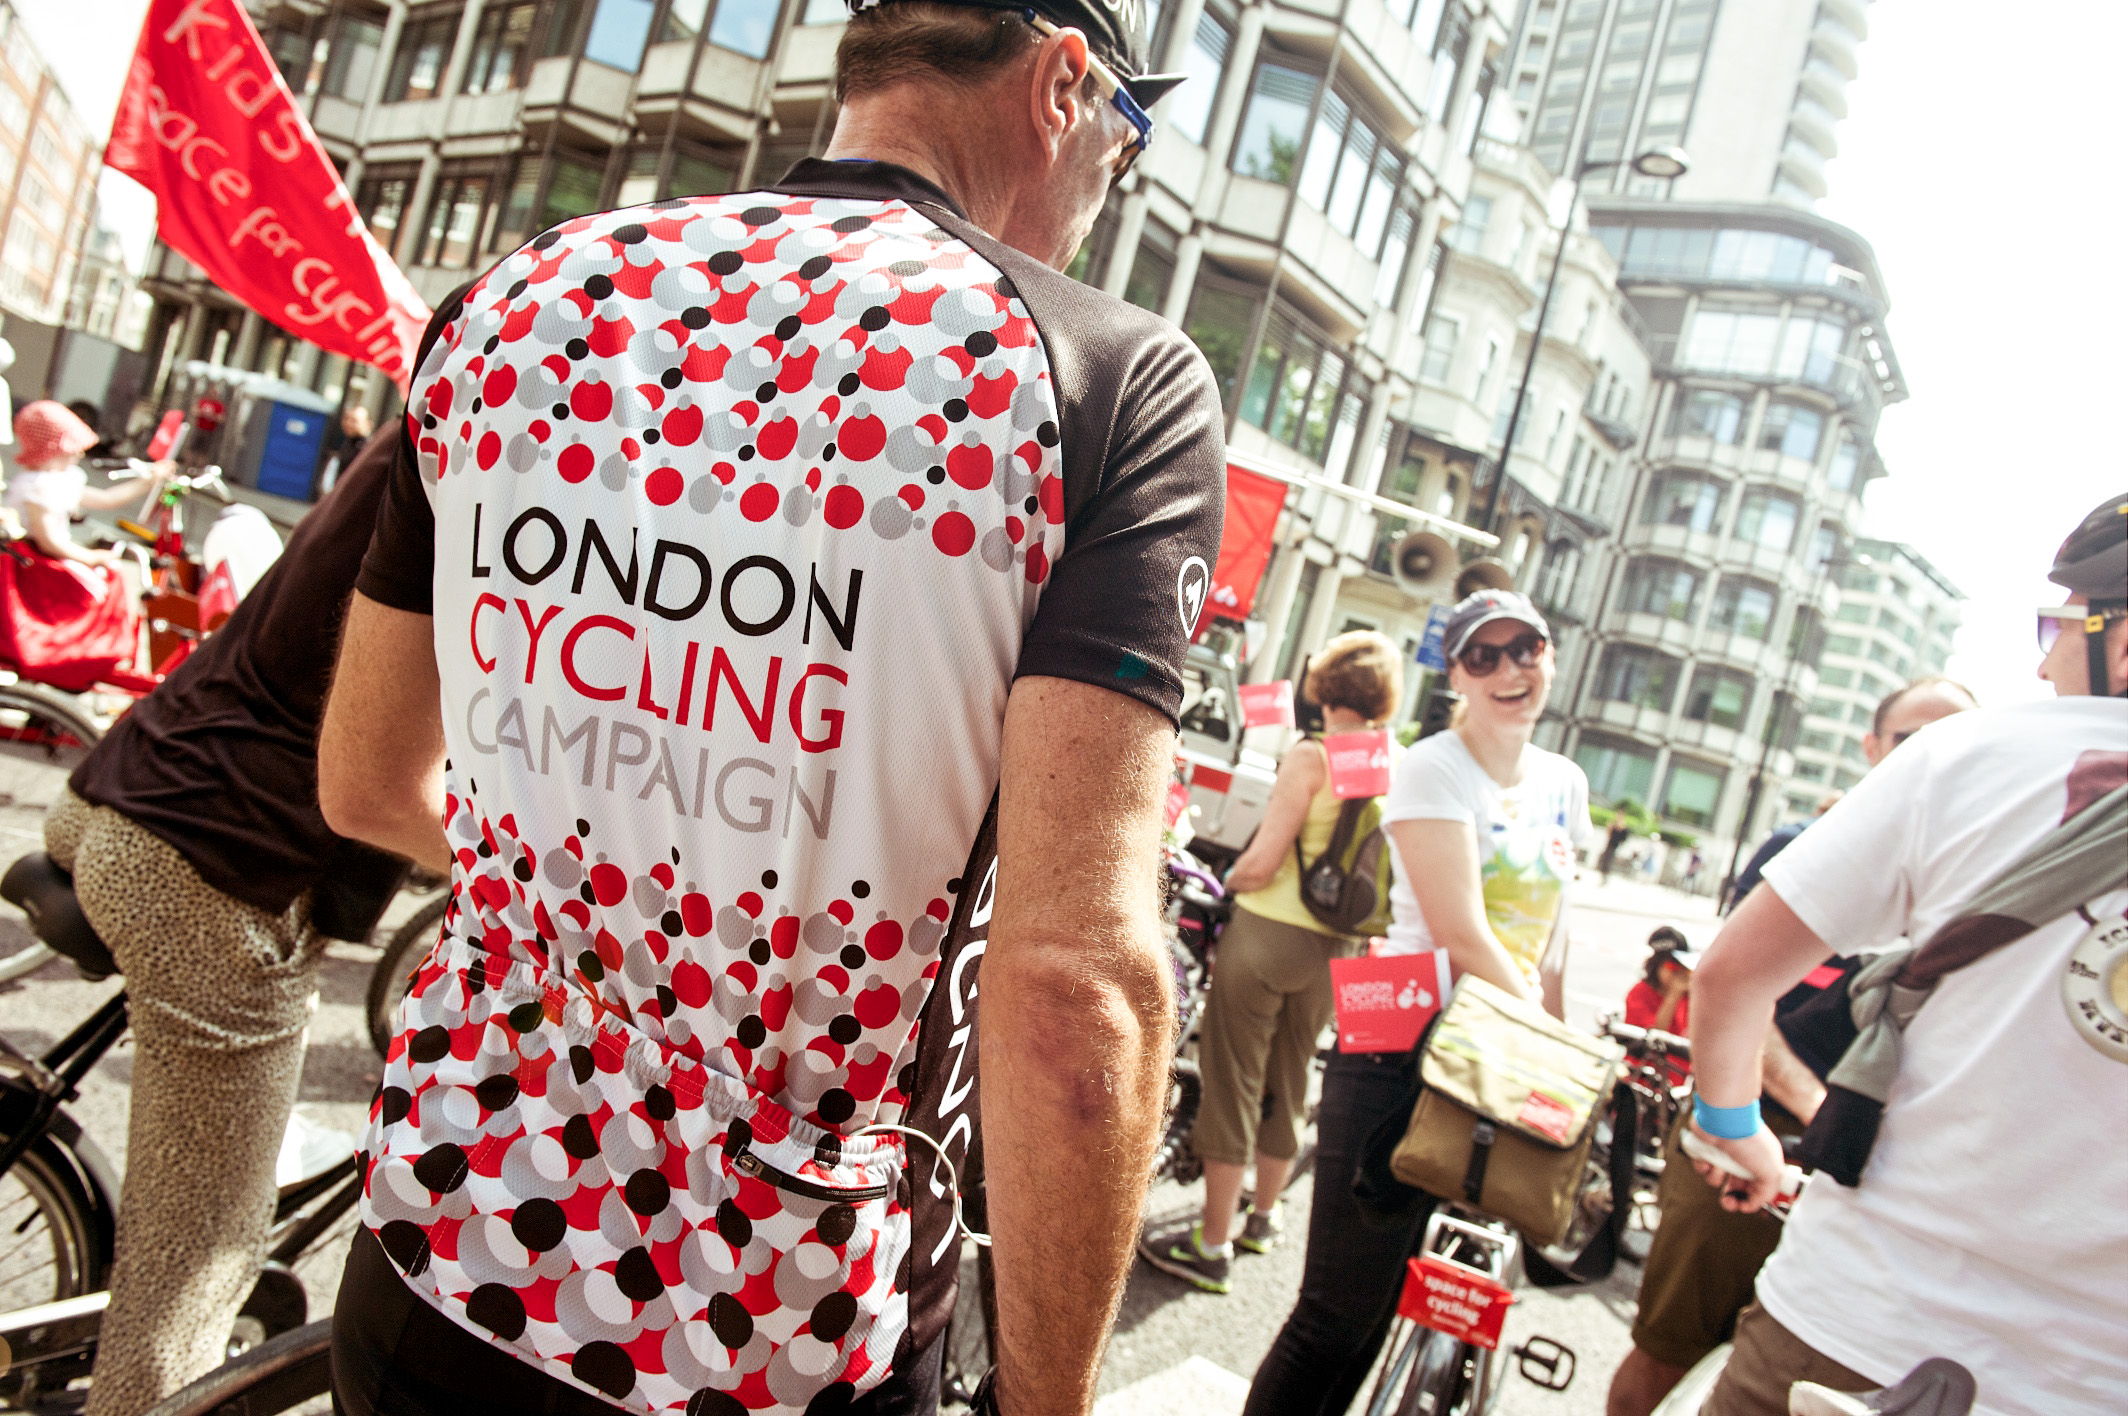 Lifestyle photography for the London Cycling Campaign. Capturing the mood and the branding with a bit of sun flare